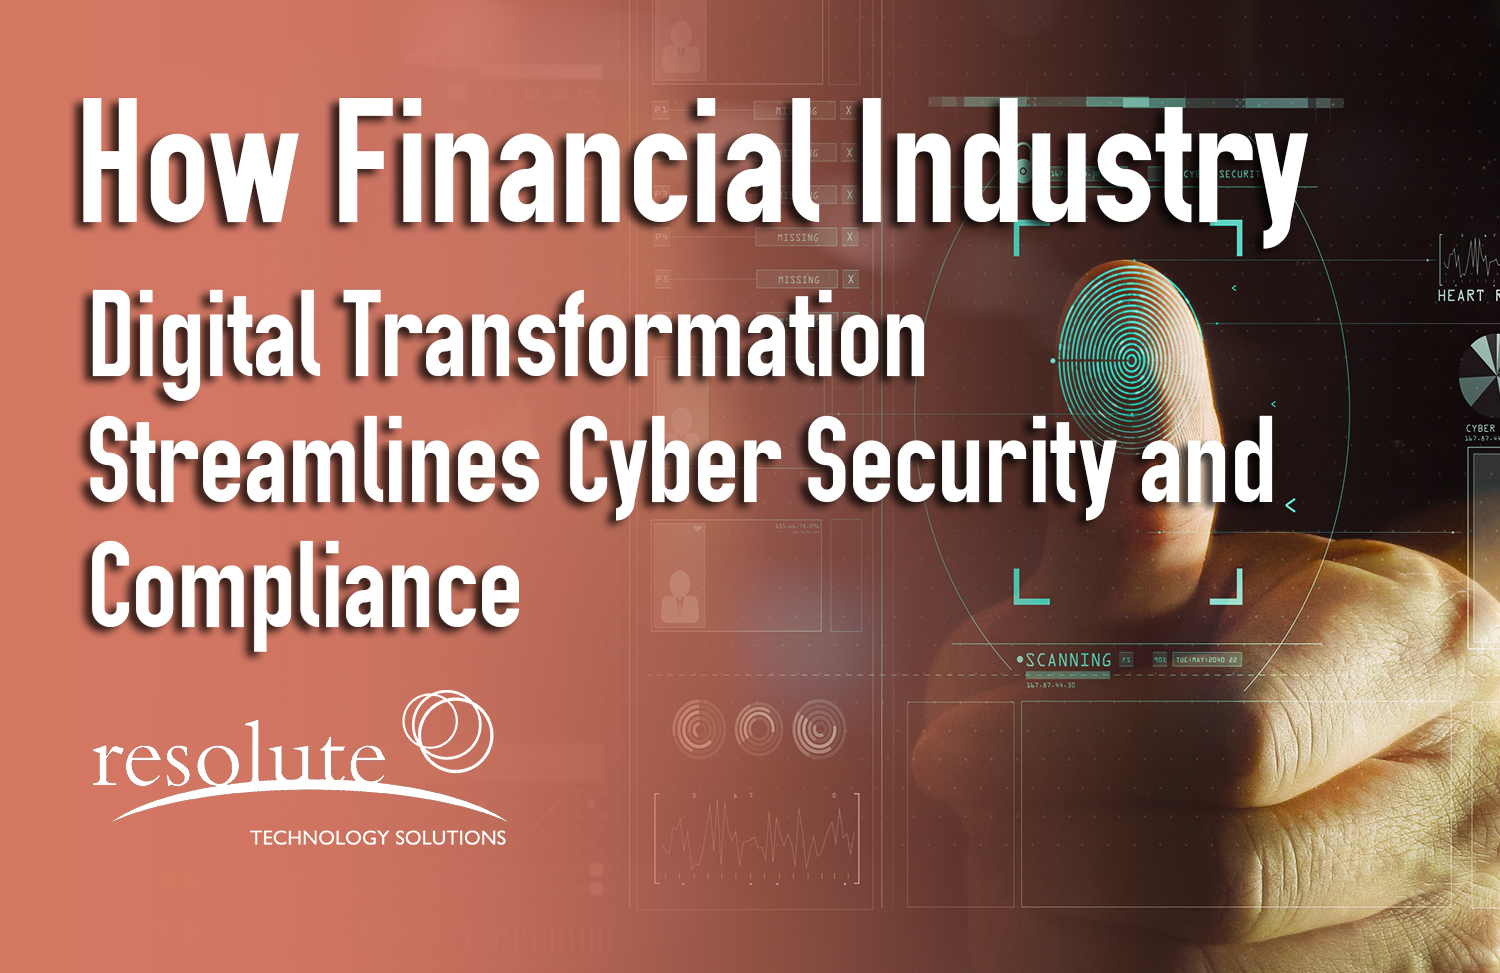 How Financial Industry Digital Transformation Streamlines Cyber Security and Compliance